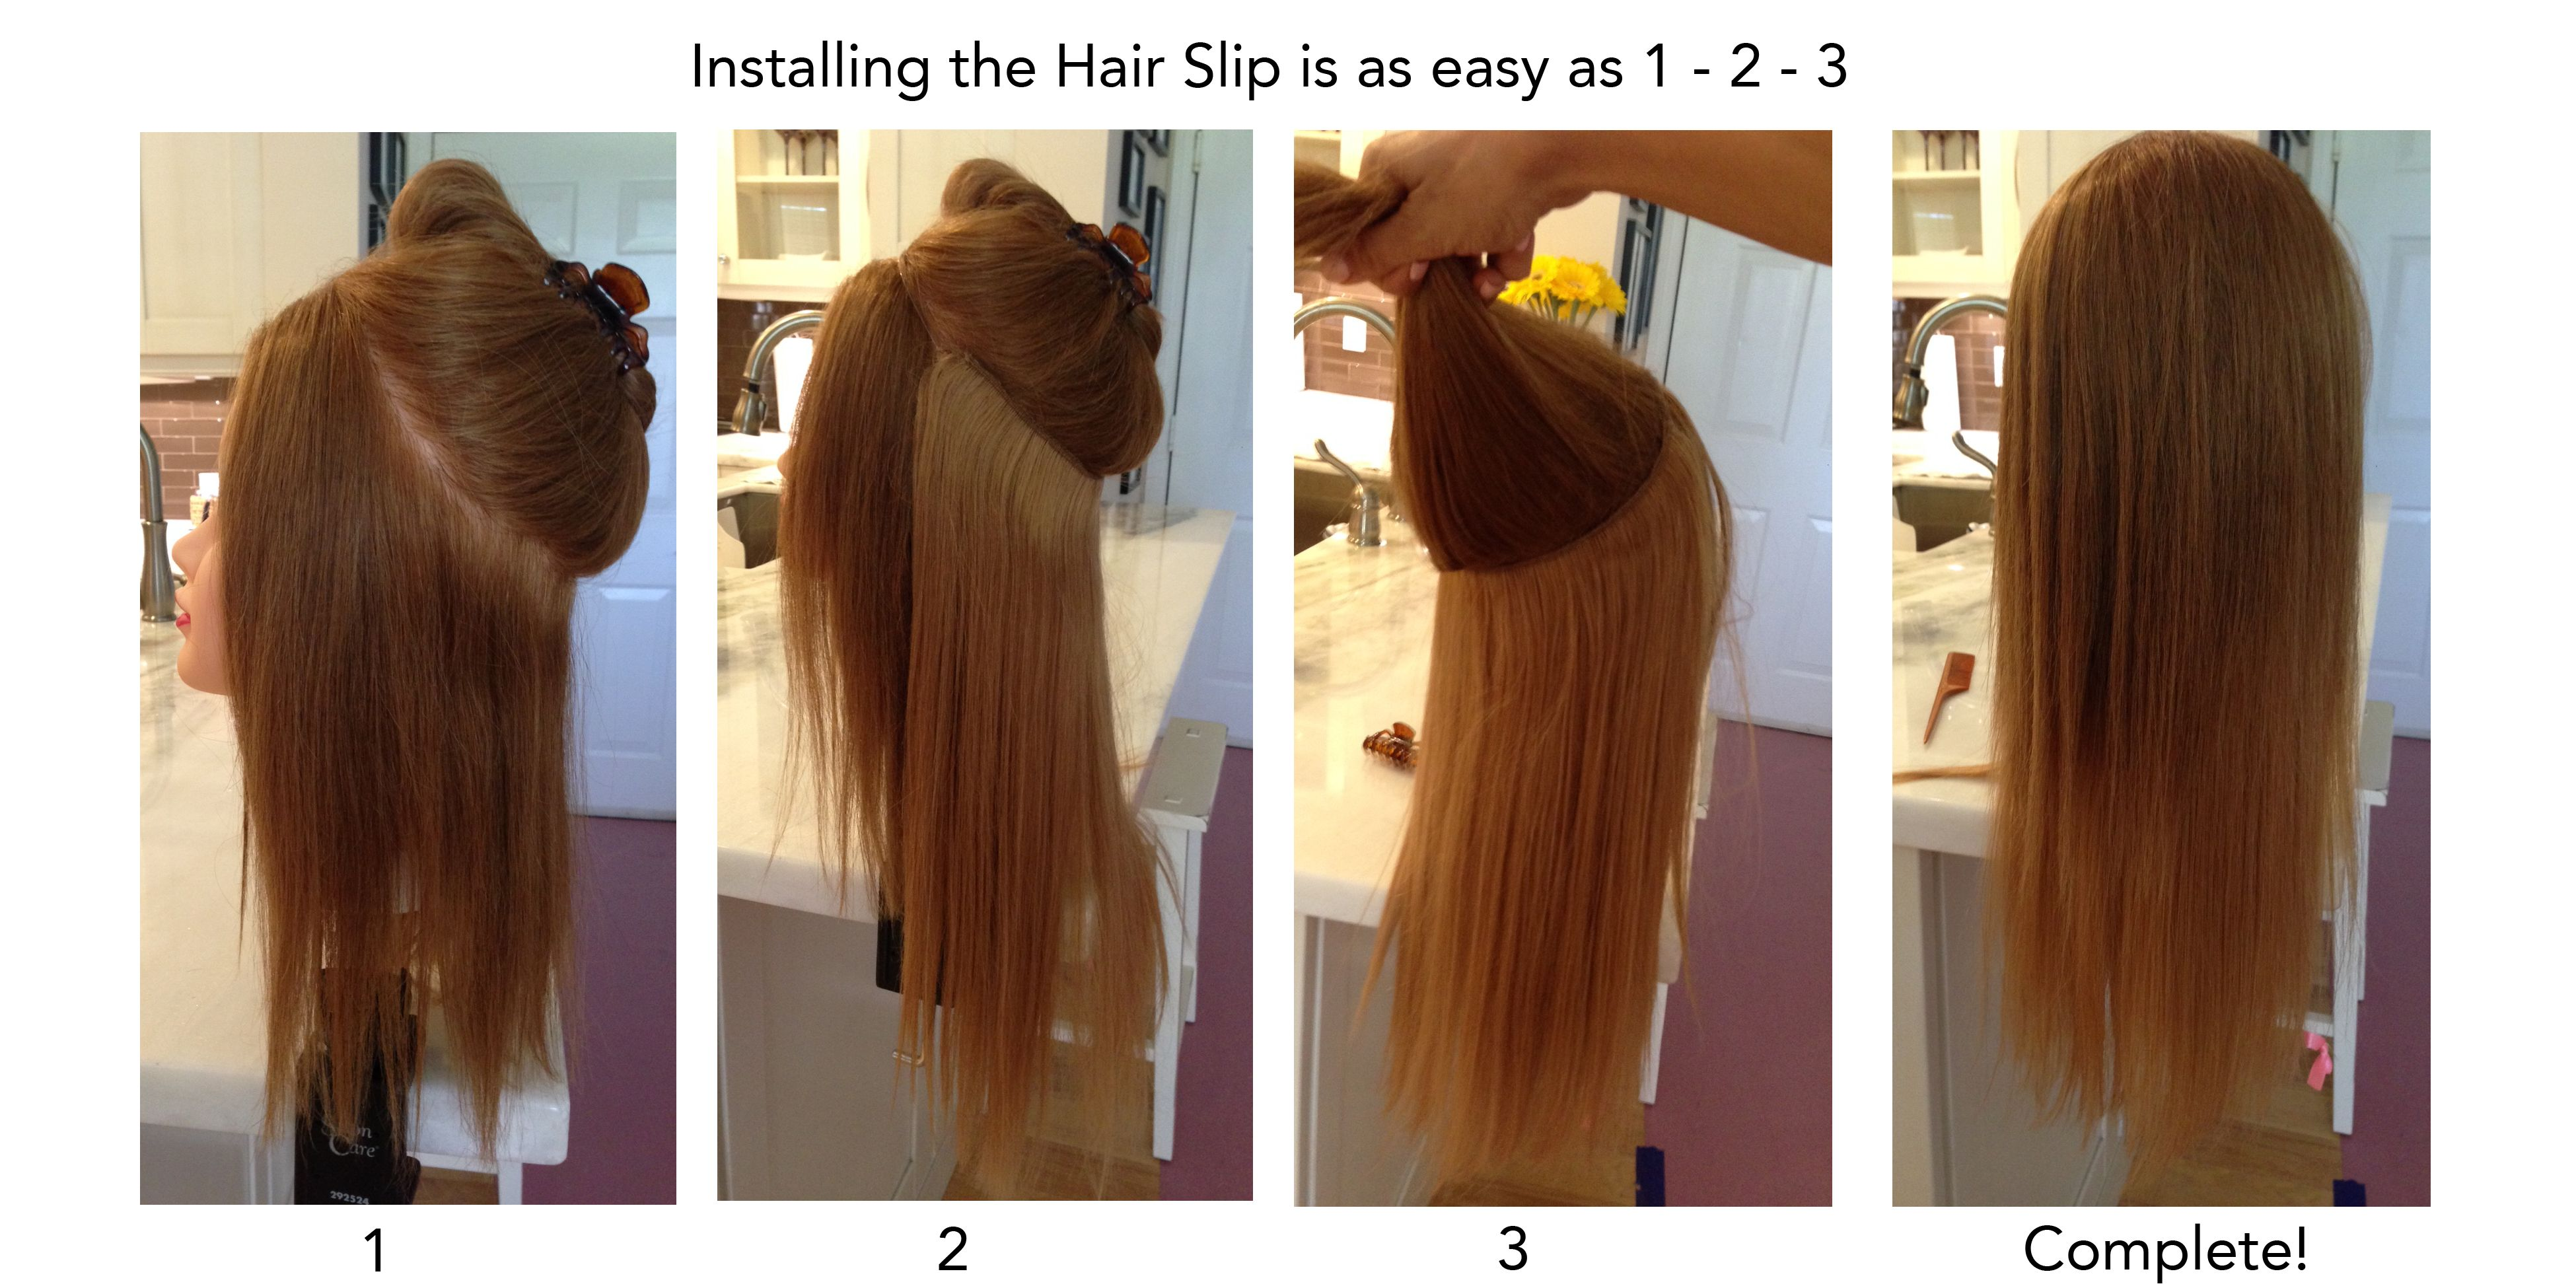 Hair slip installation the hair slip halo method pinterest explore halo hair extensions virgin hair and more pmusecretfo Choice Image